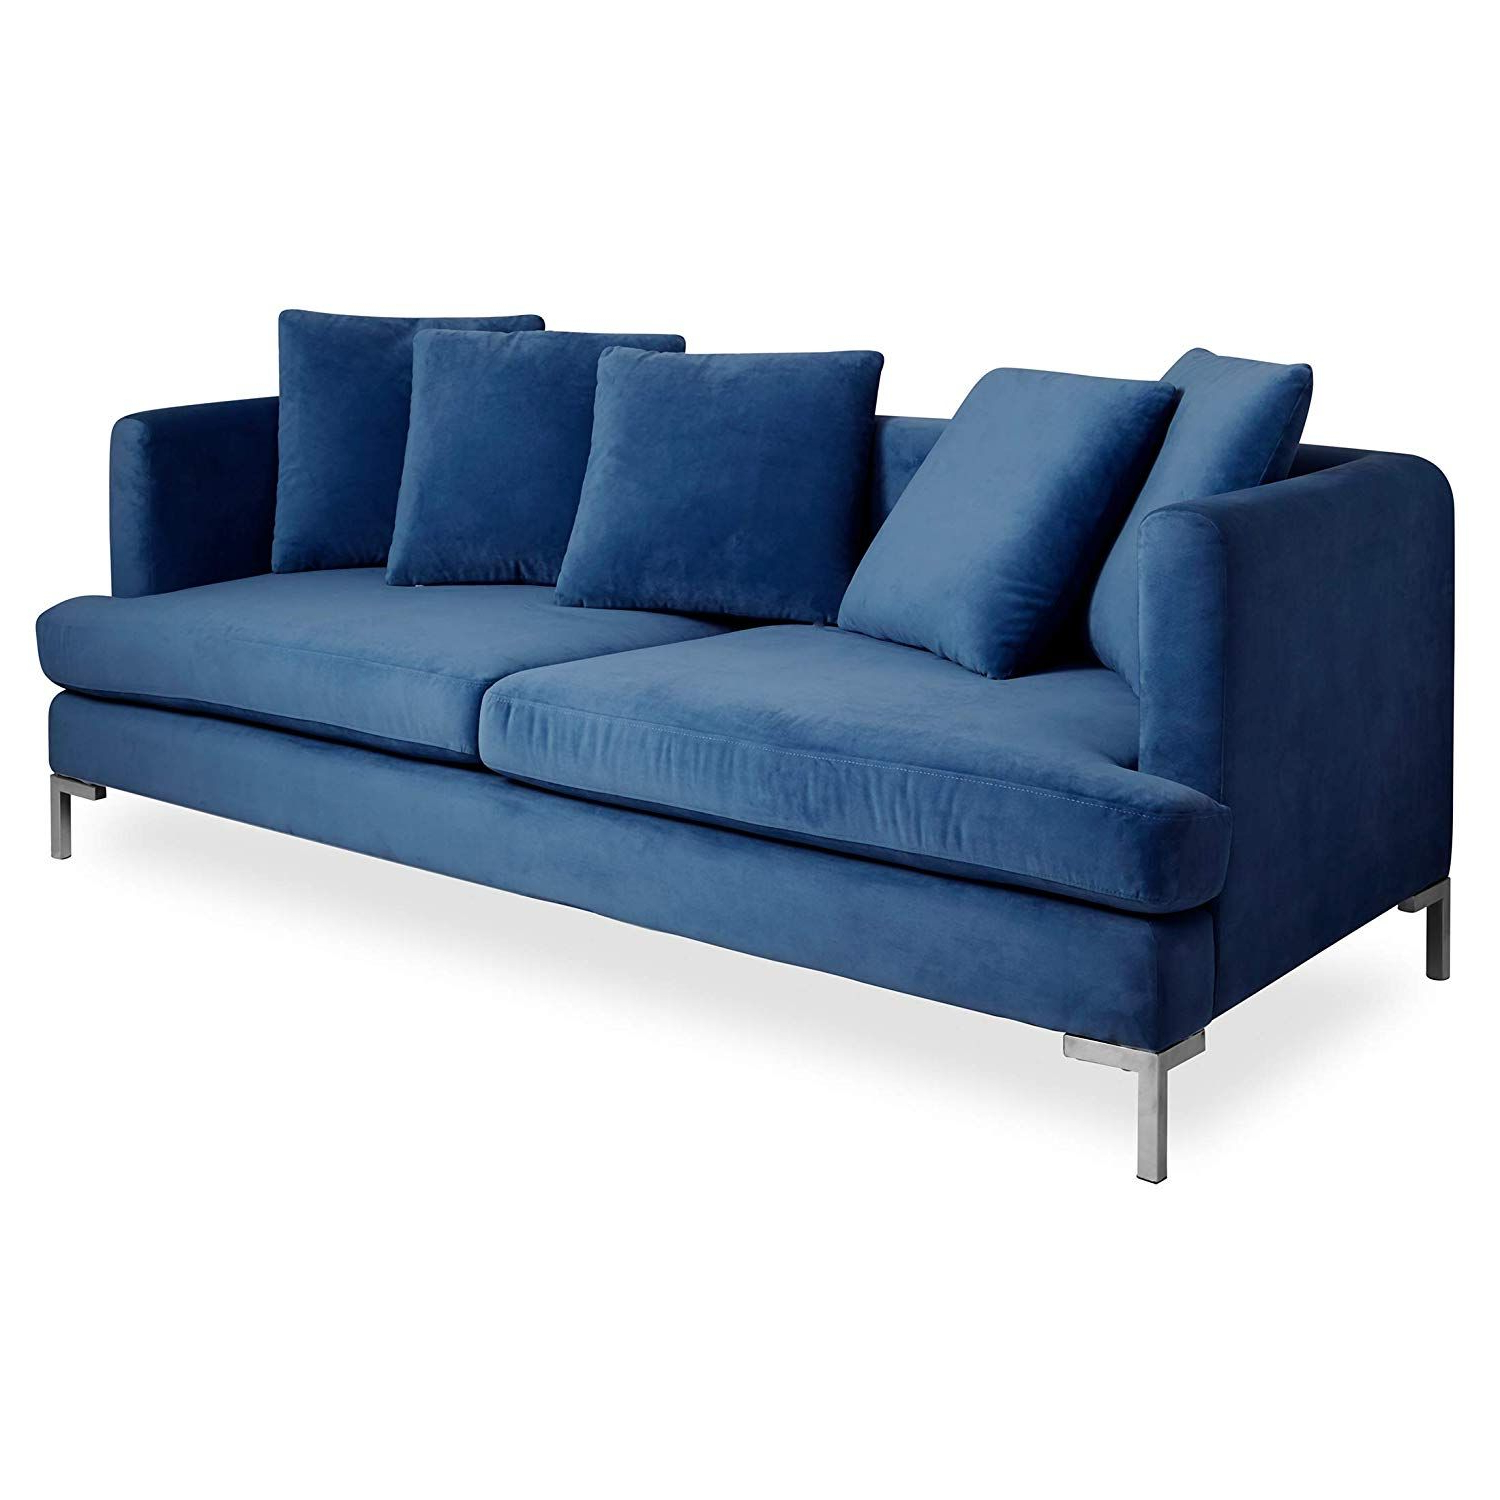 Jonathan Adler Now House Line Black Friday Deals 2018 Within Famous Alder Grande Ii Sofa Chairs (View 12 of 20)